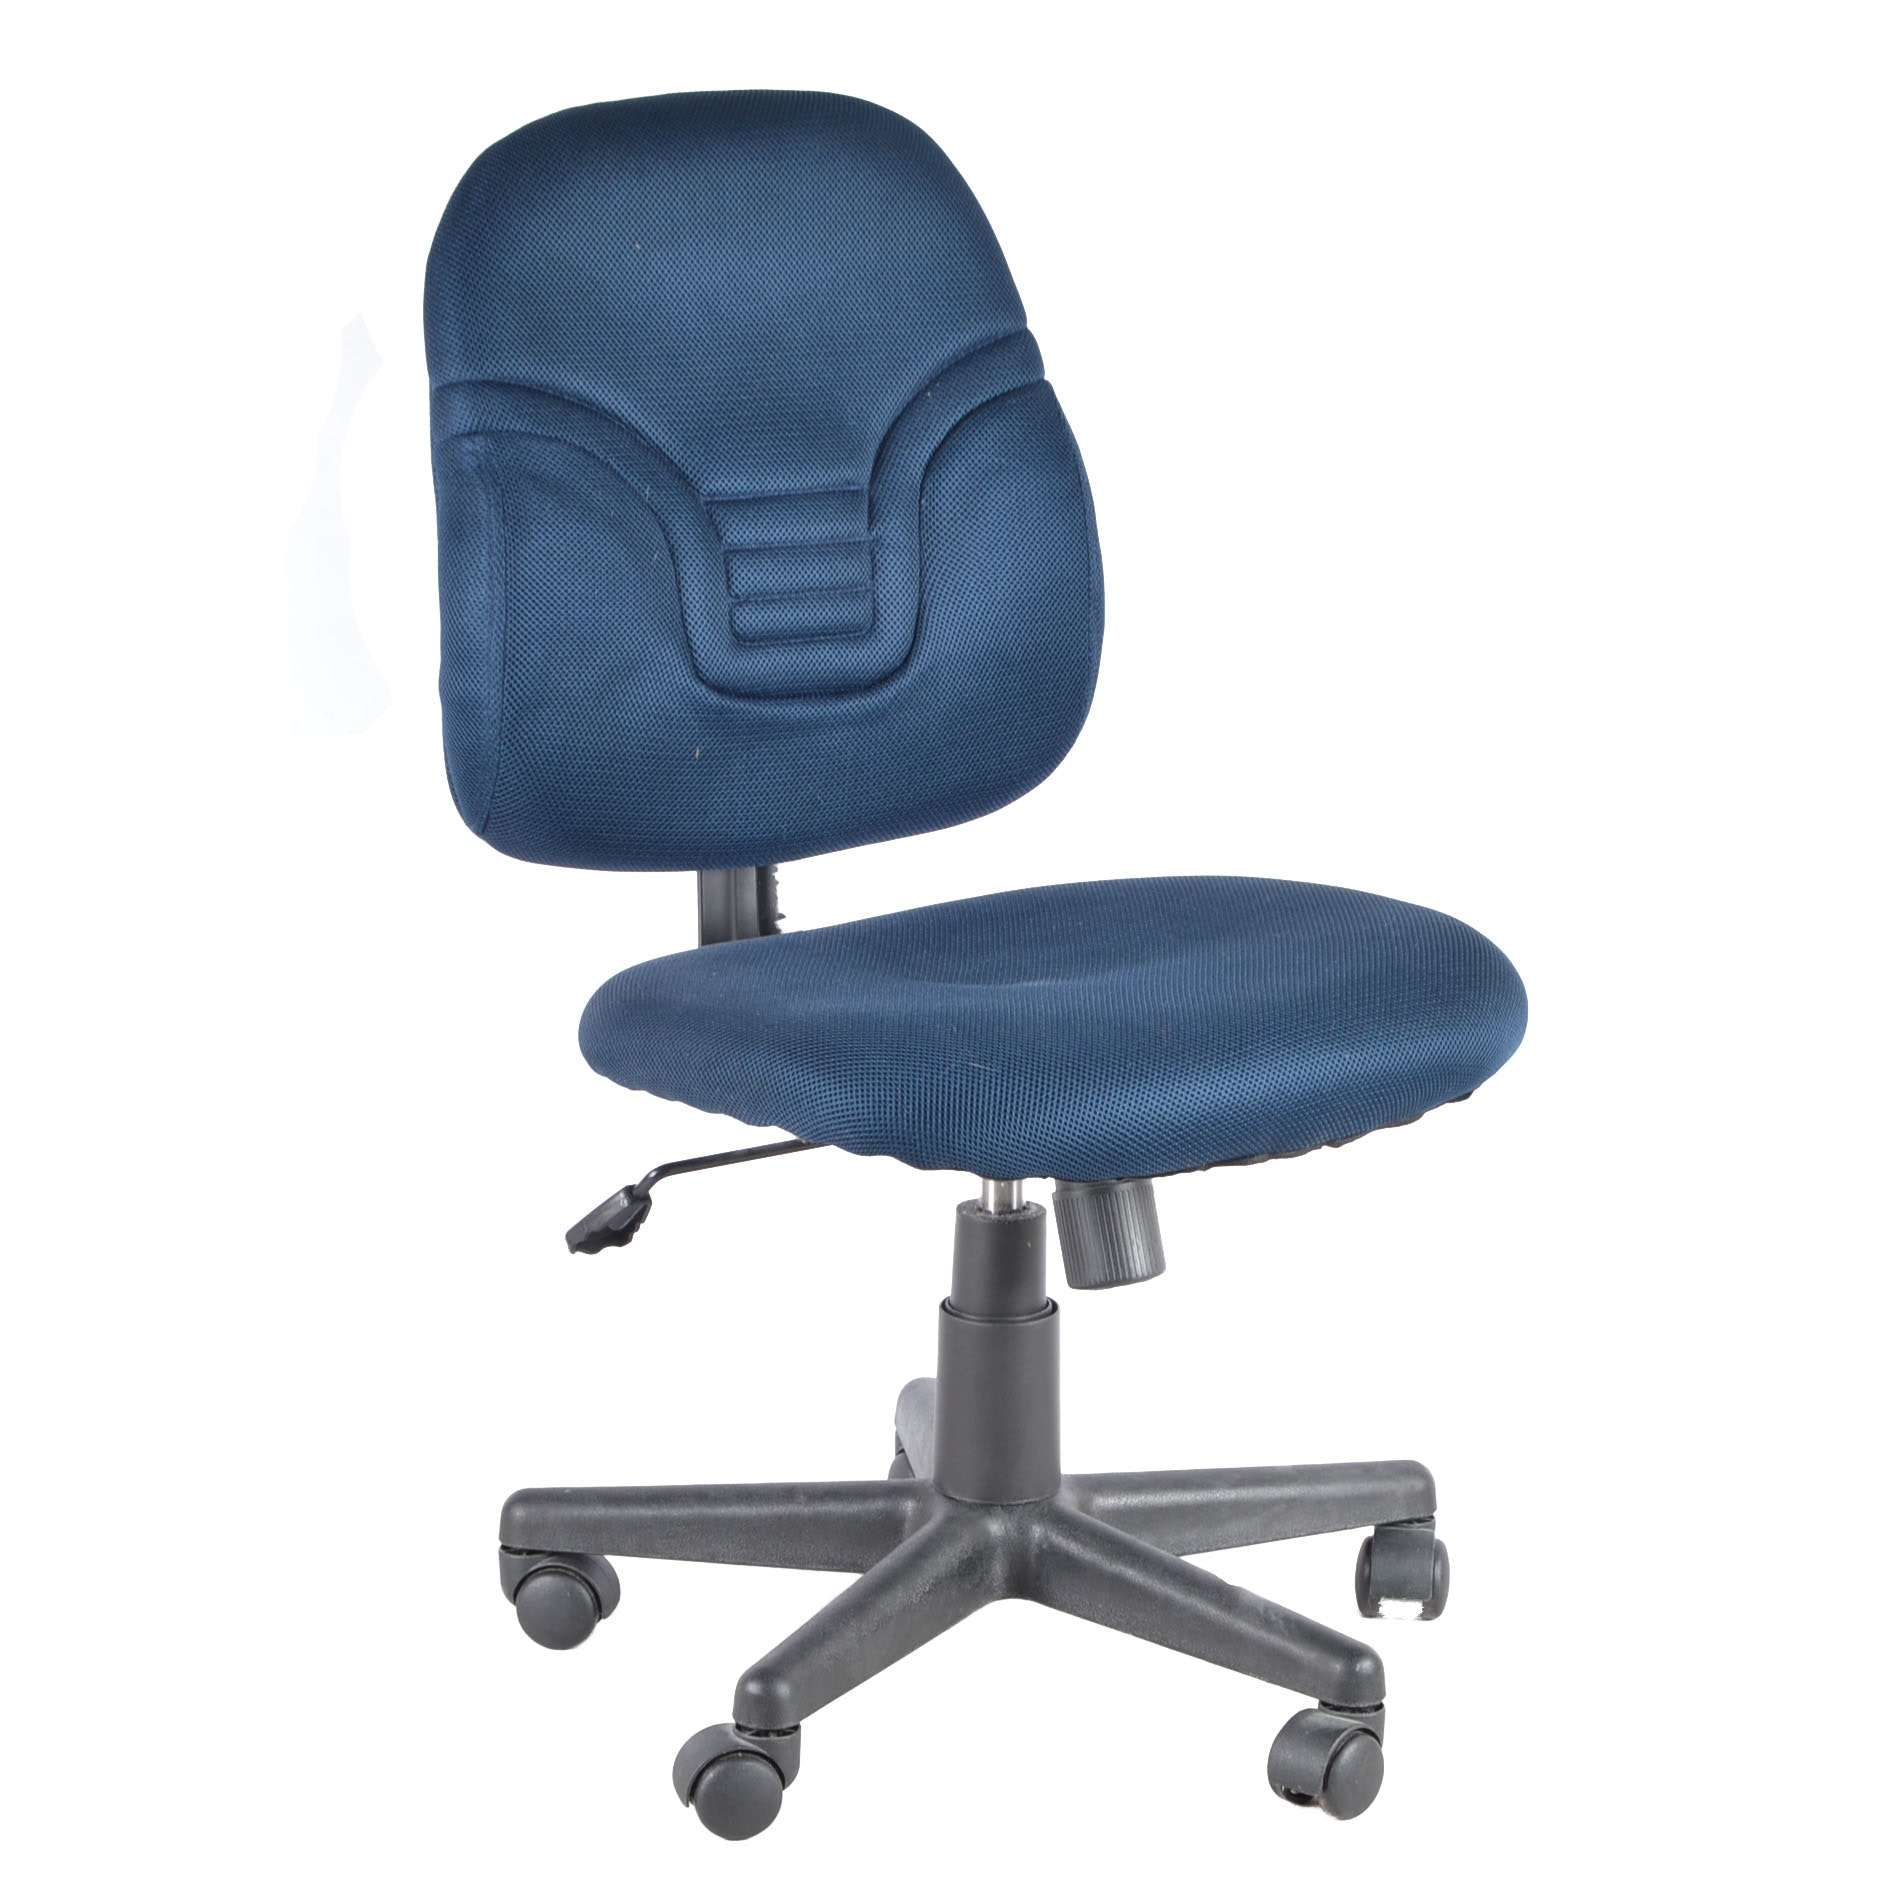 Adjustable Desk Chair on Casters